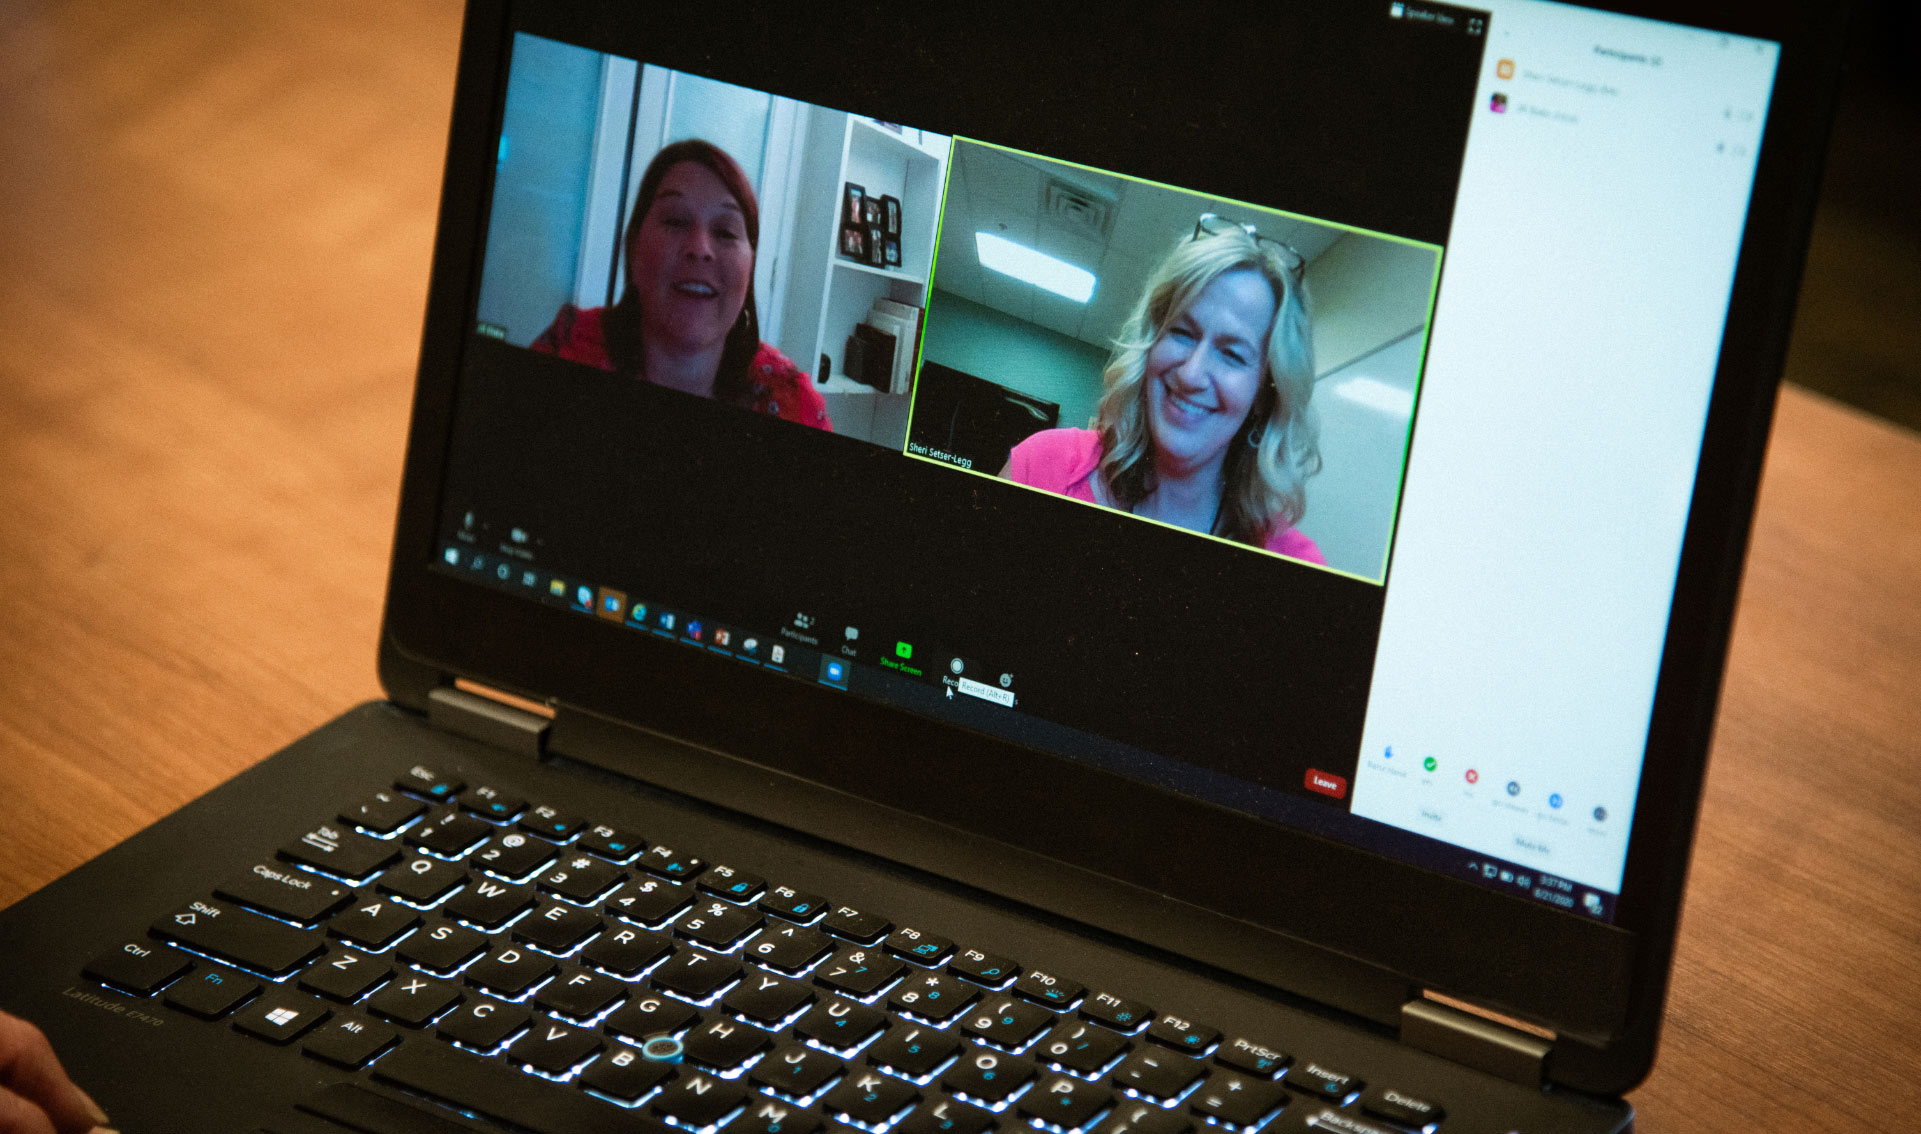 A laptop screen shows side-by-side videos of Jill and Sheri talking to each other during a TeleCare appointment.